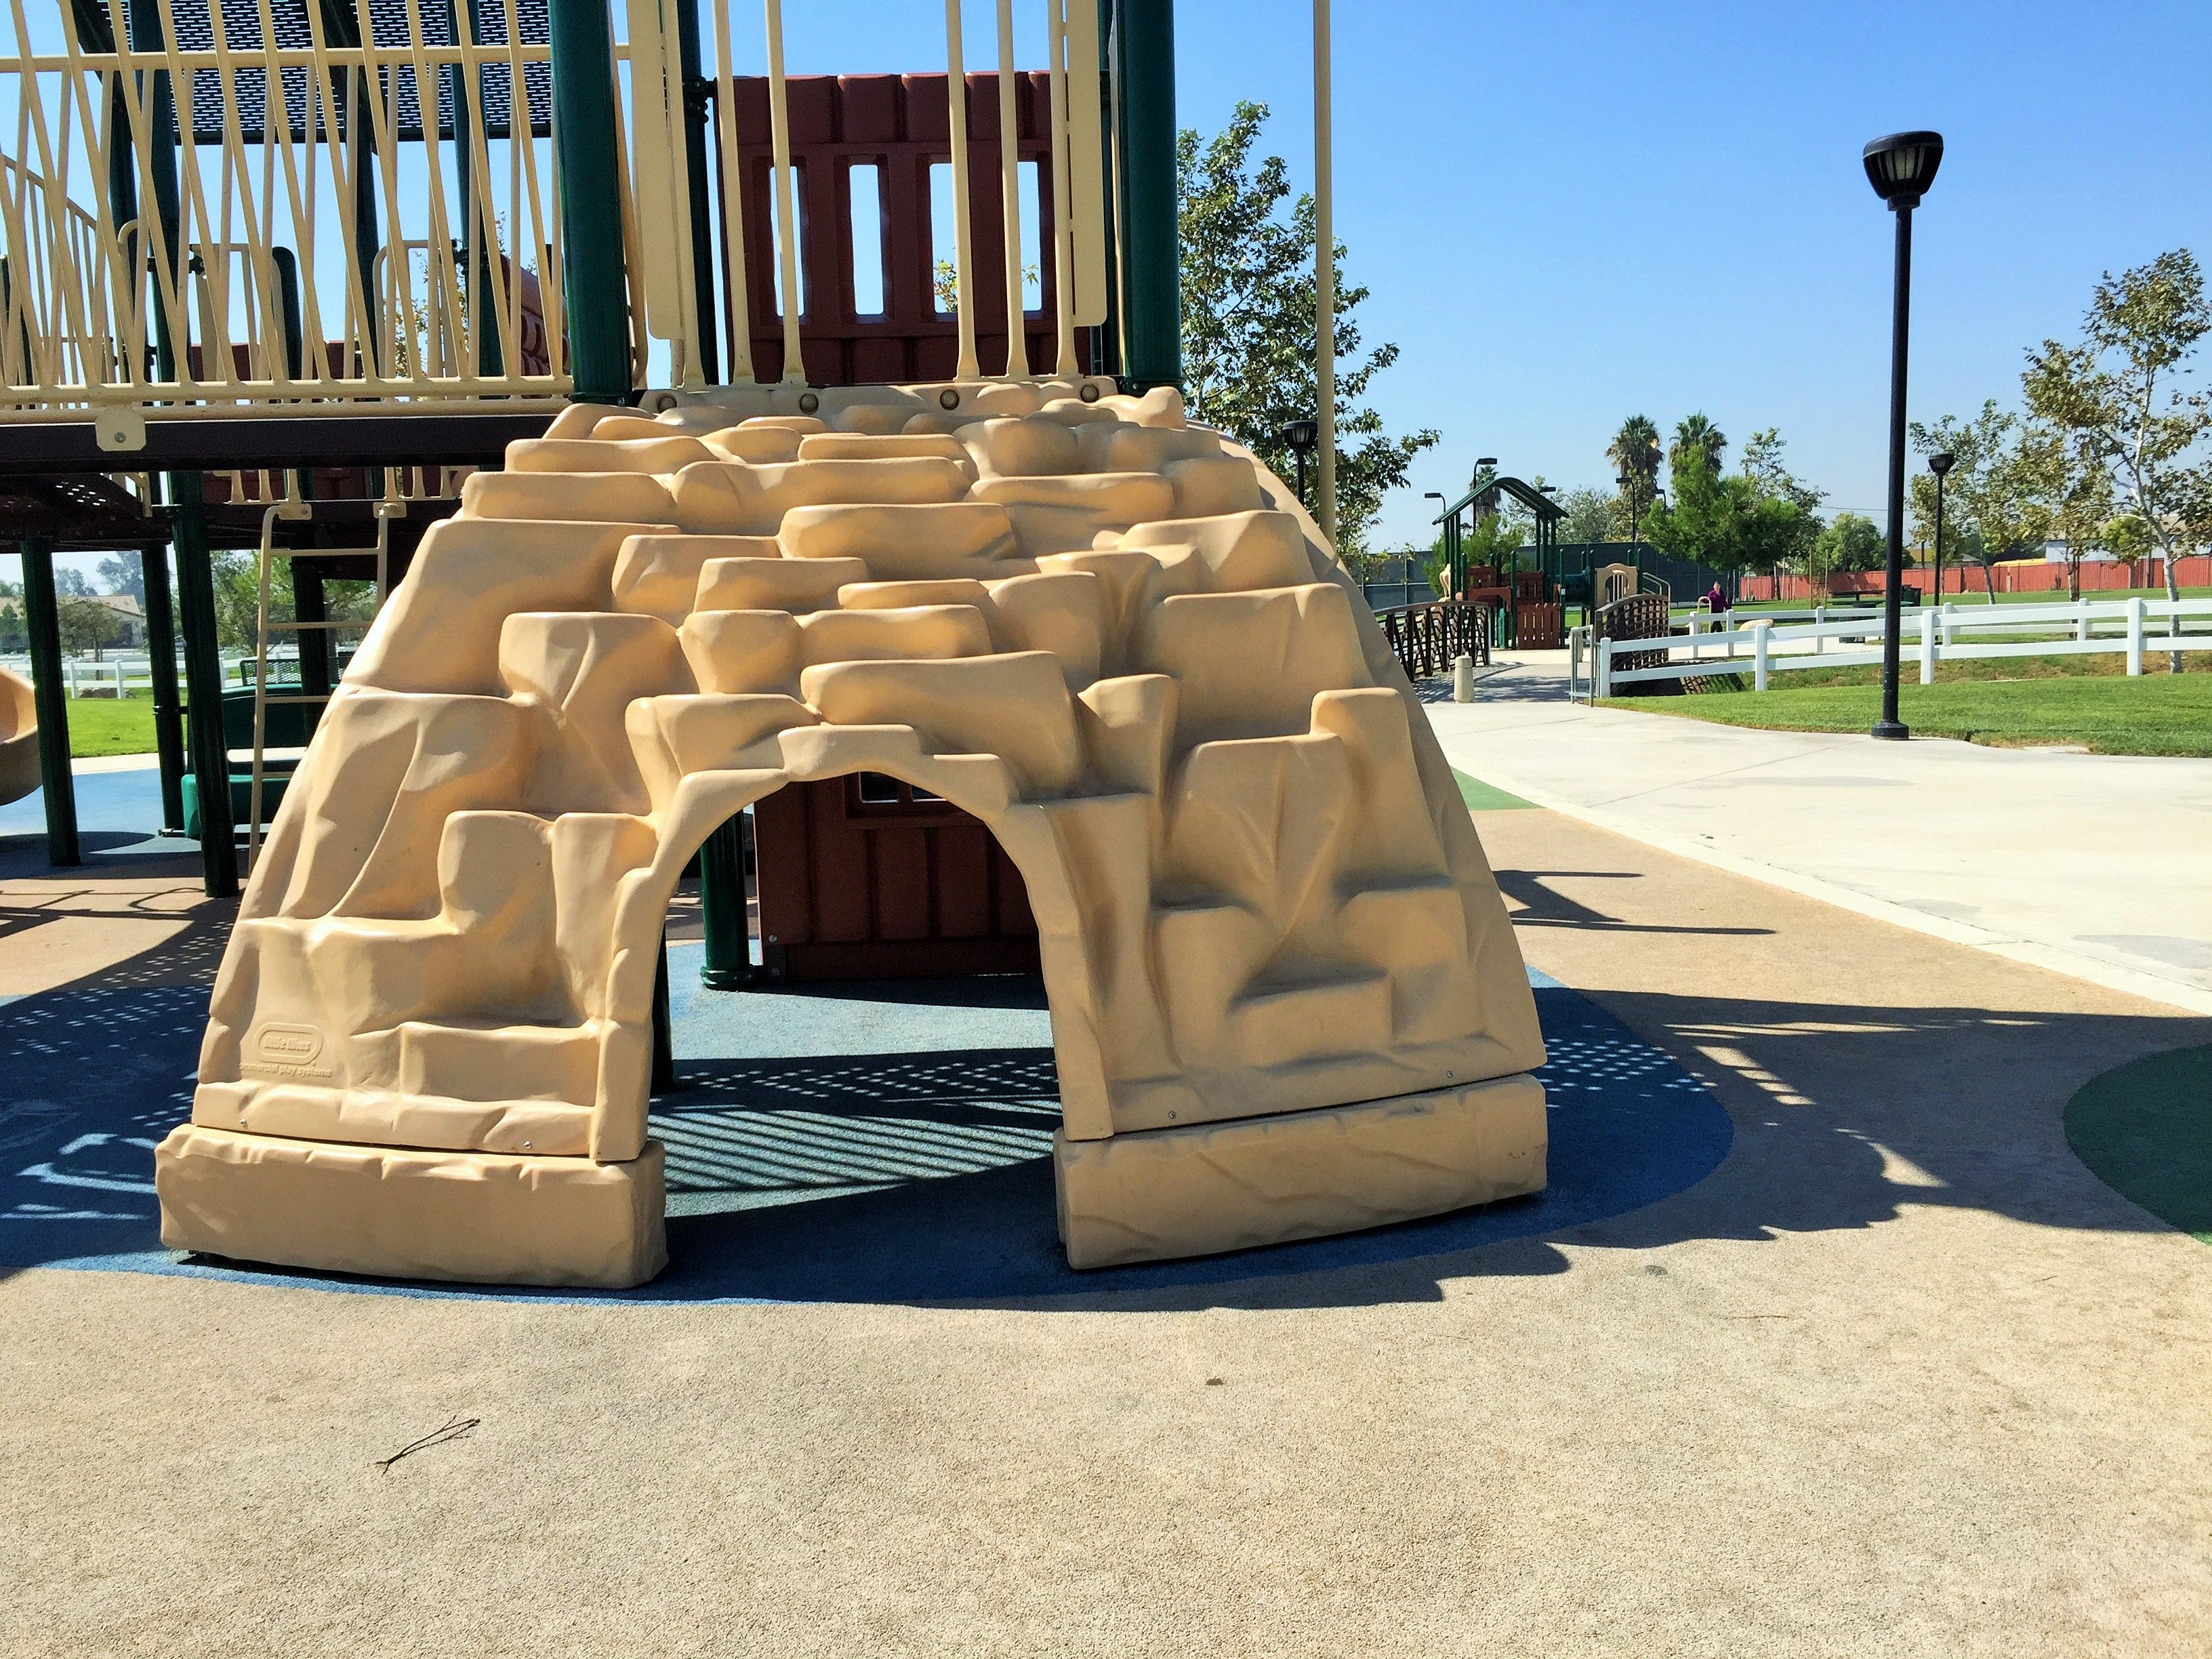 An igloo to climb and play on at the playground for big kids at Mountain View Park in Eastvale, California. http://youreastvalerealtor.com/eastvale-parks/